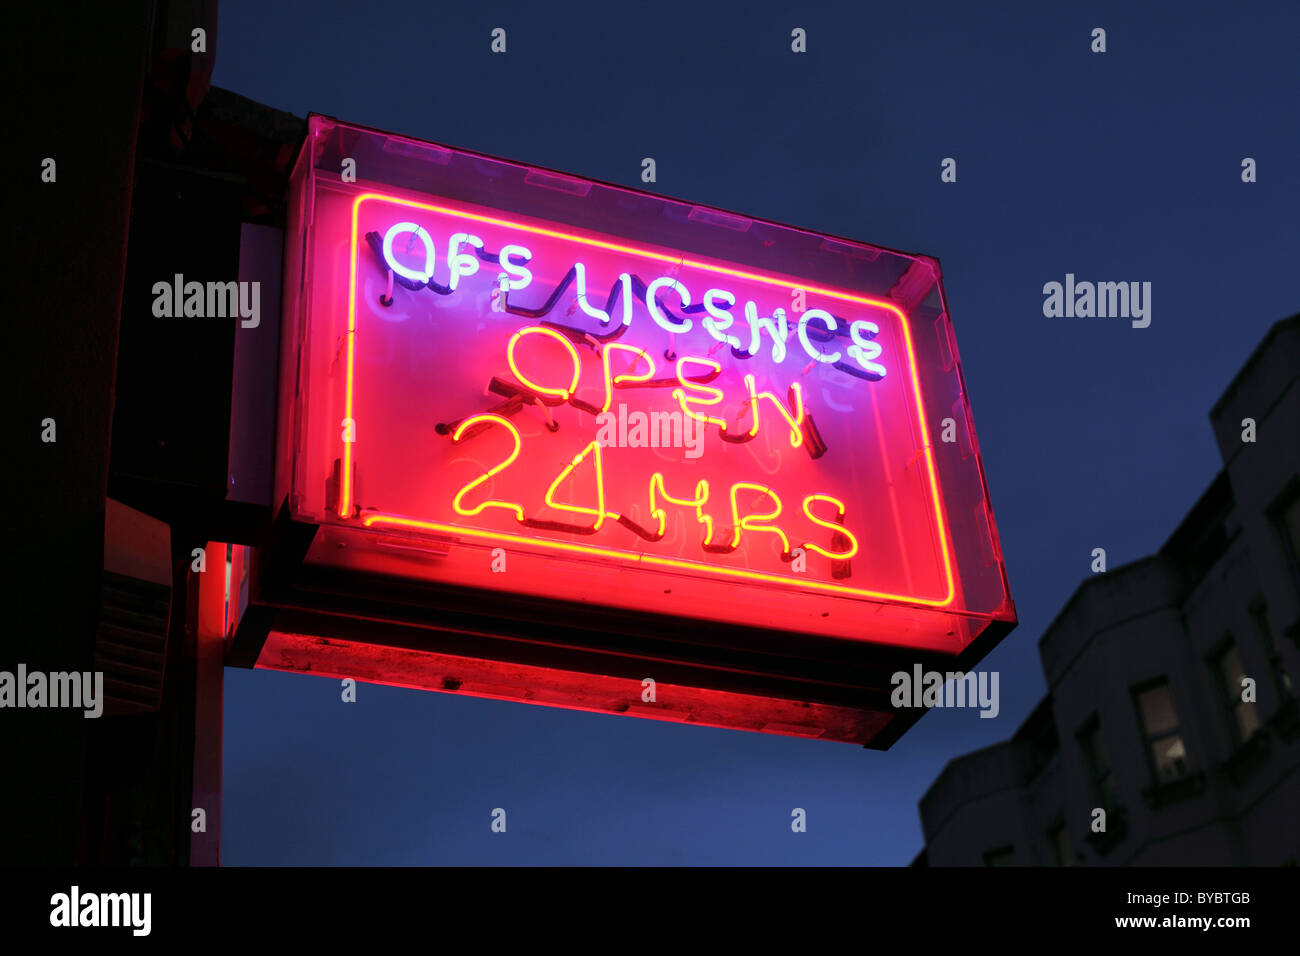 24 hour off licence sign, Sussex - Stock Image